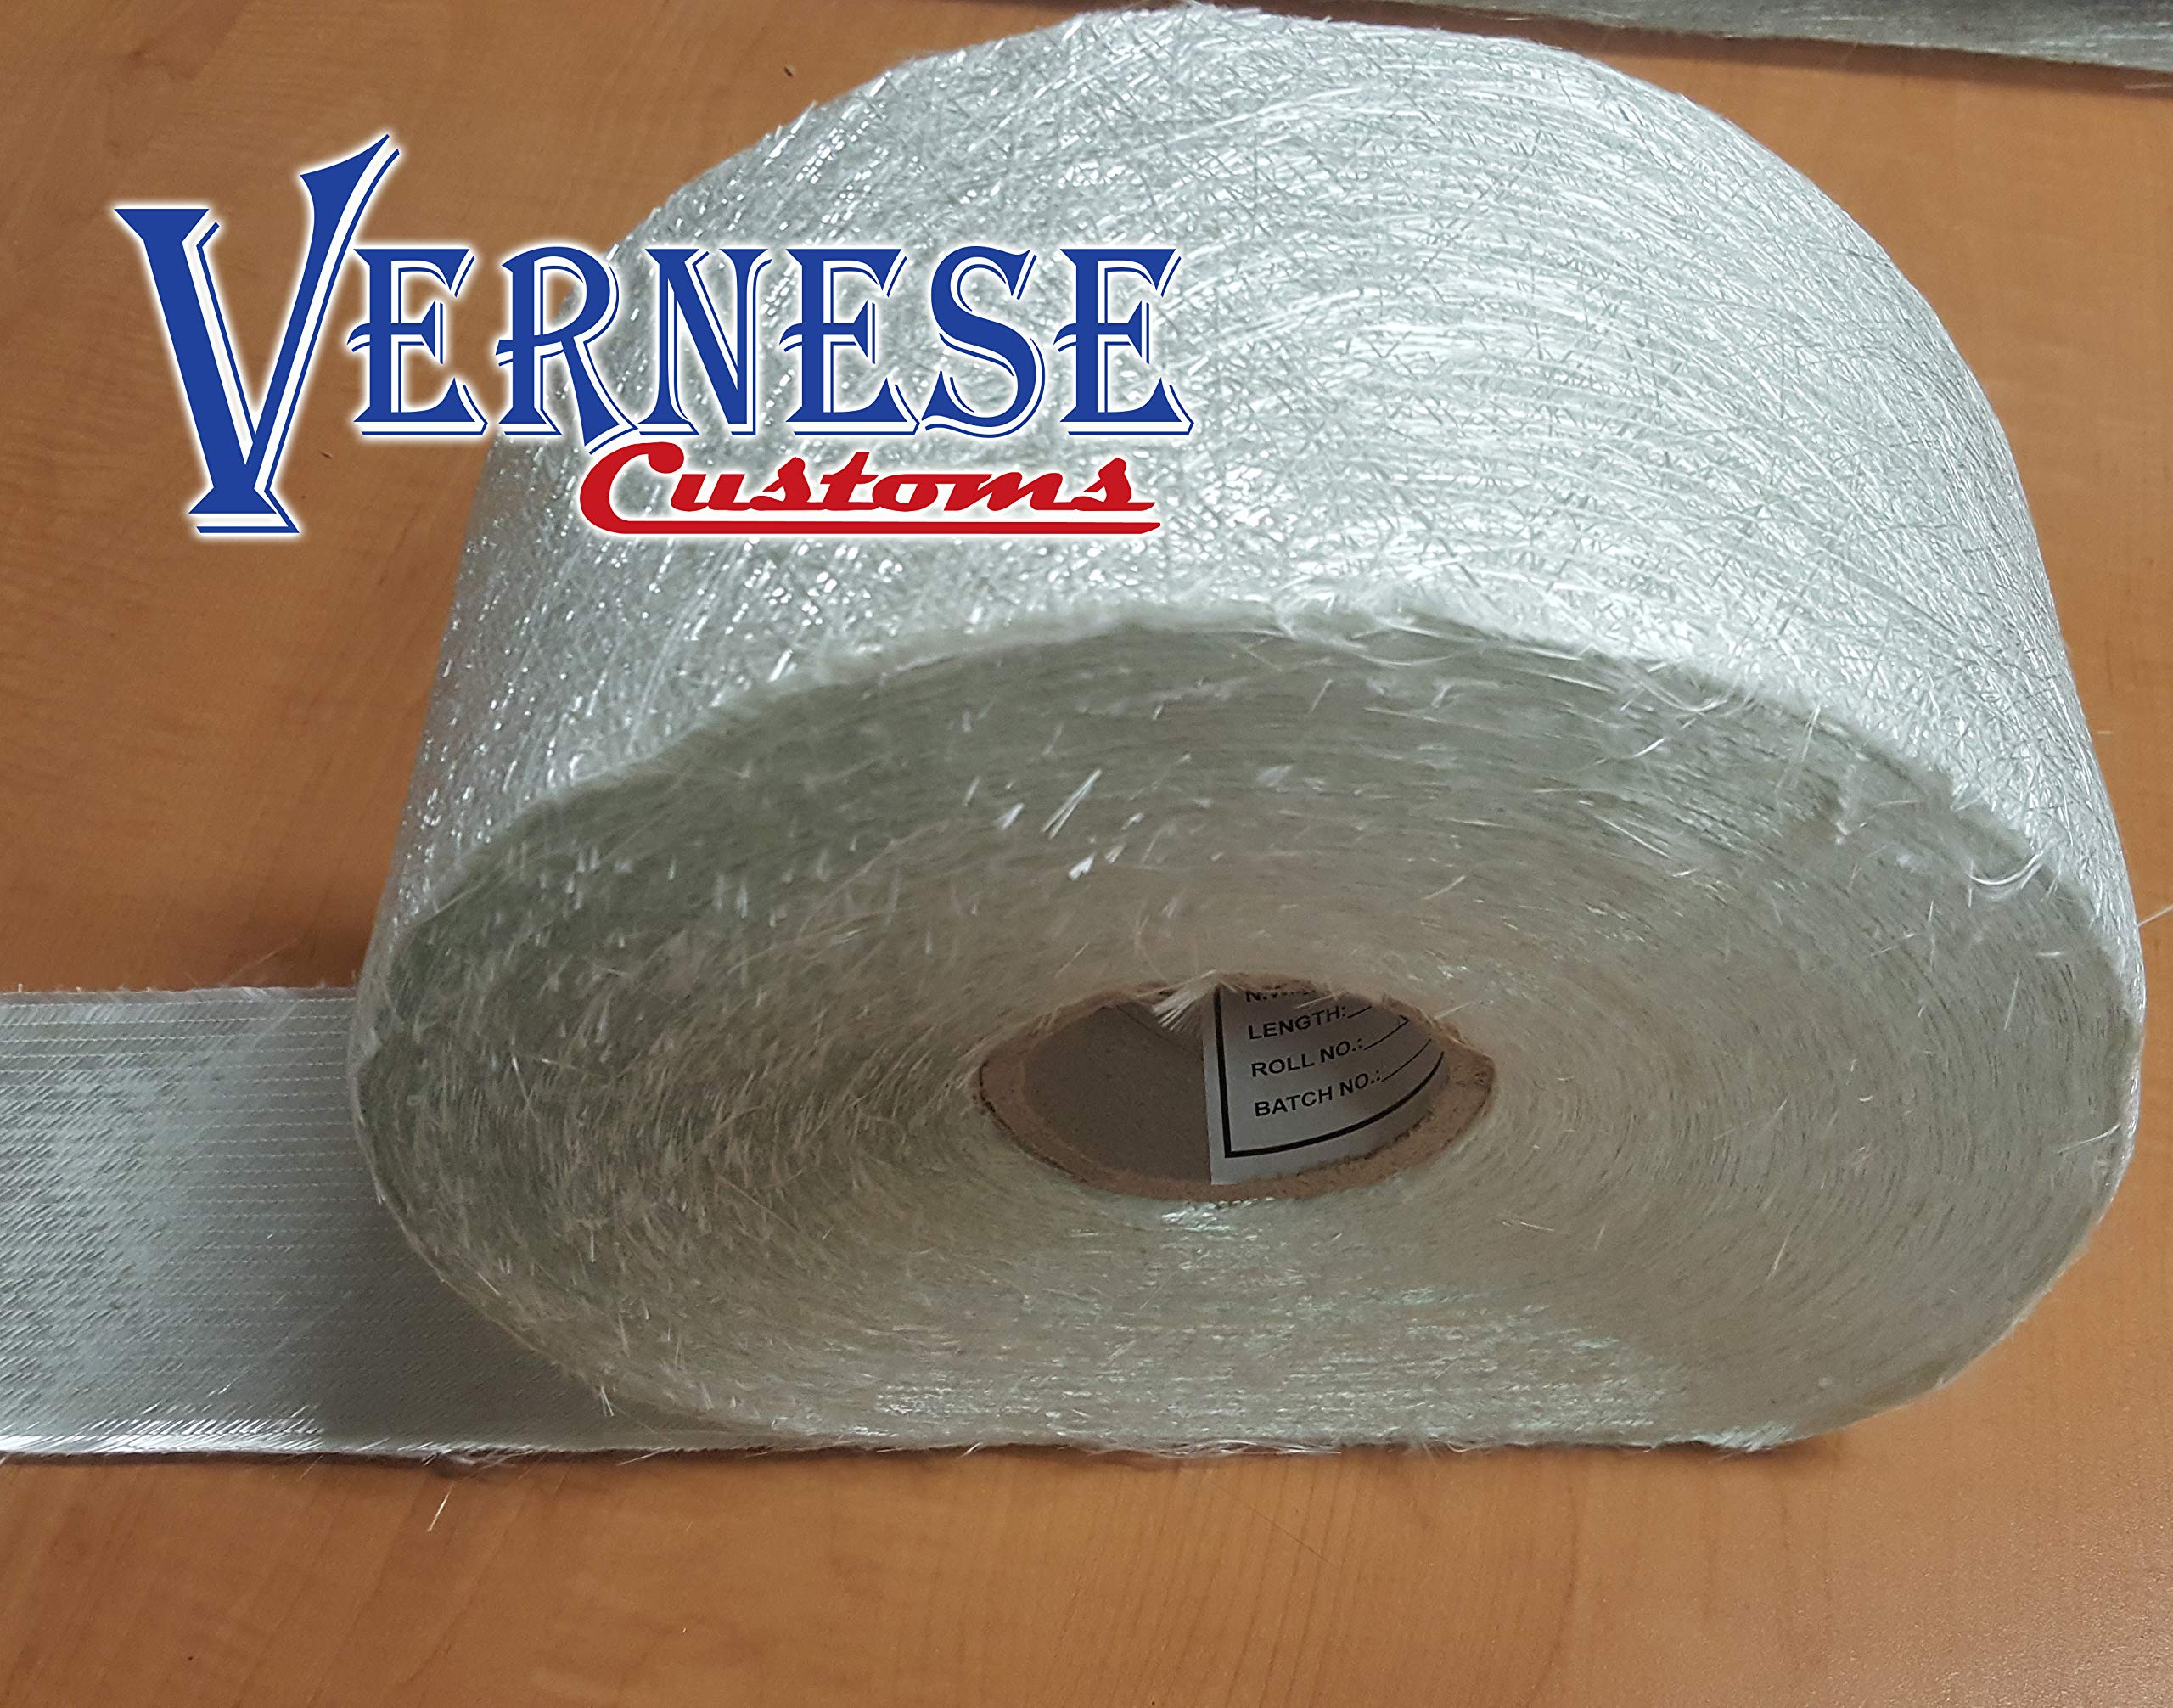 1708 Fiberglass, Double Bias with Mat, 4'' x 85 Yards, Full Roll by Vernese Customs